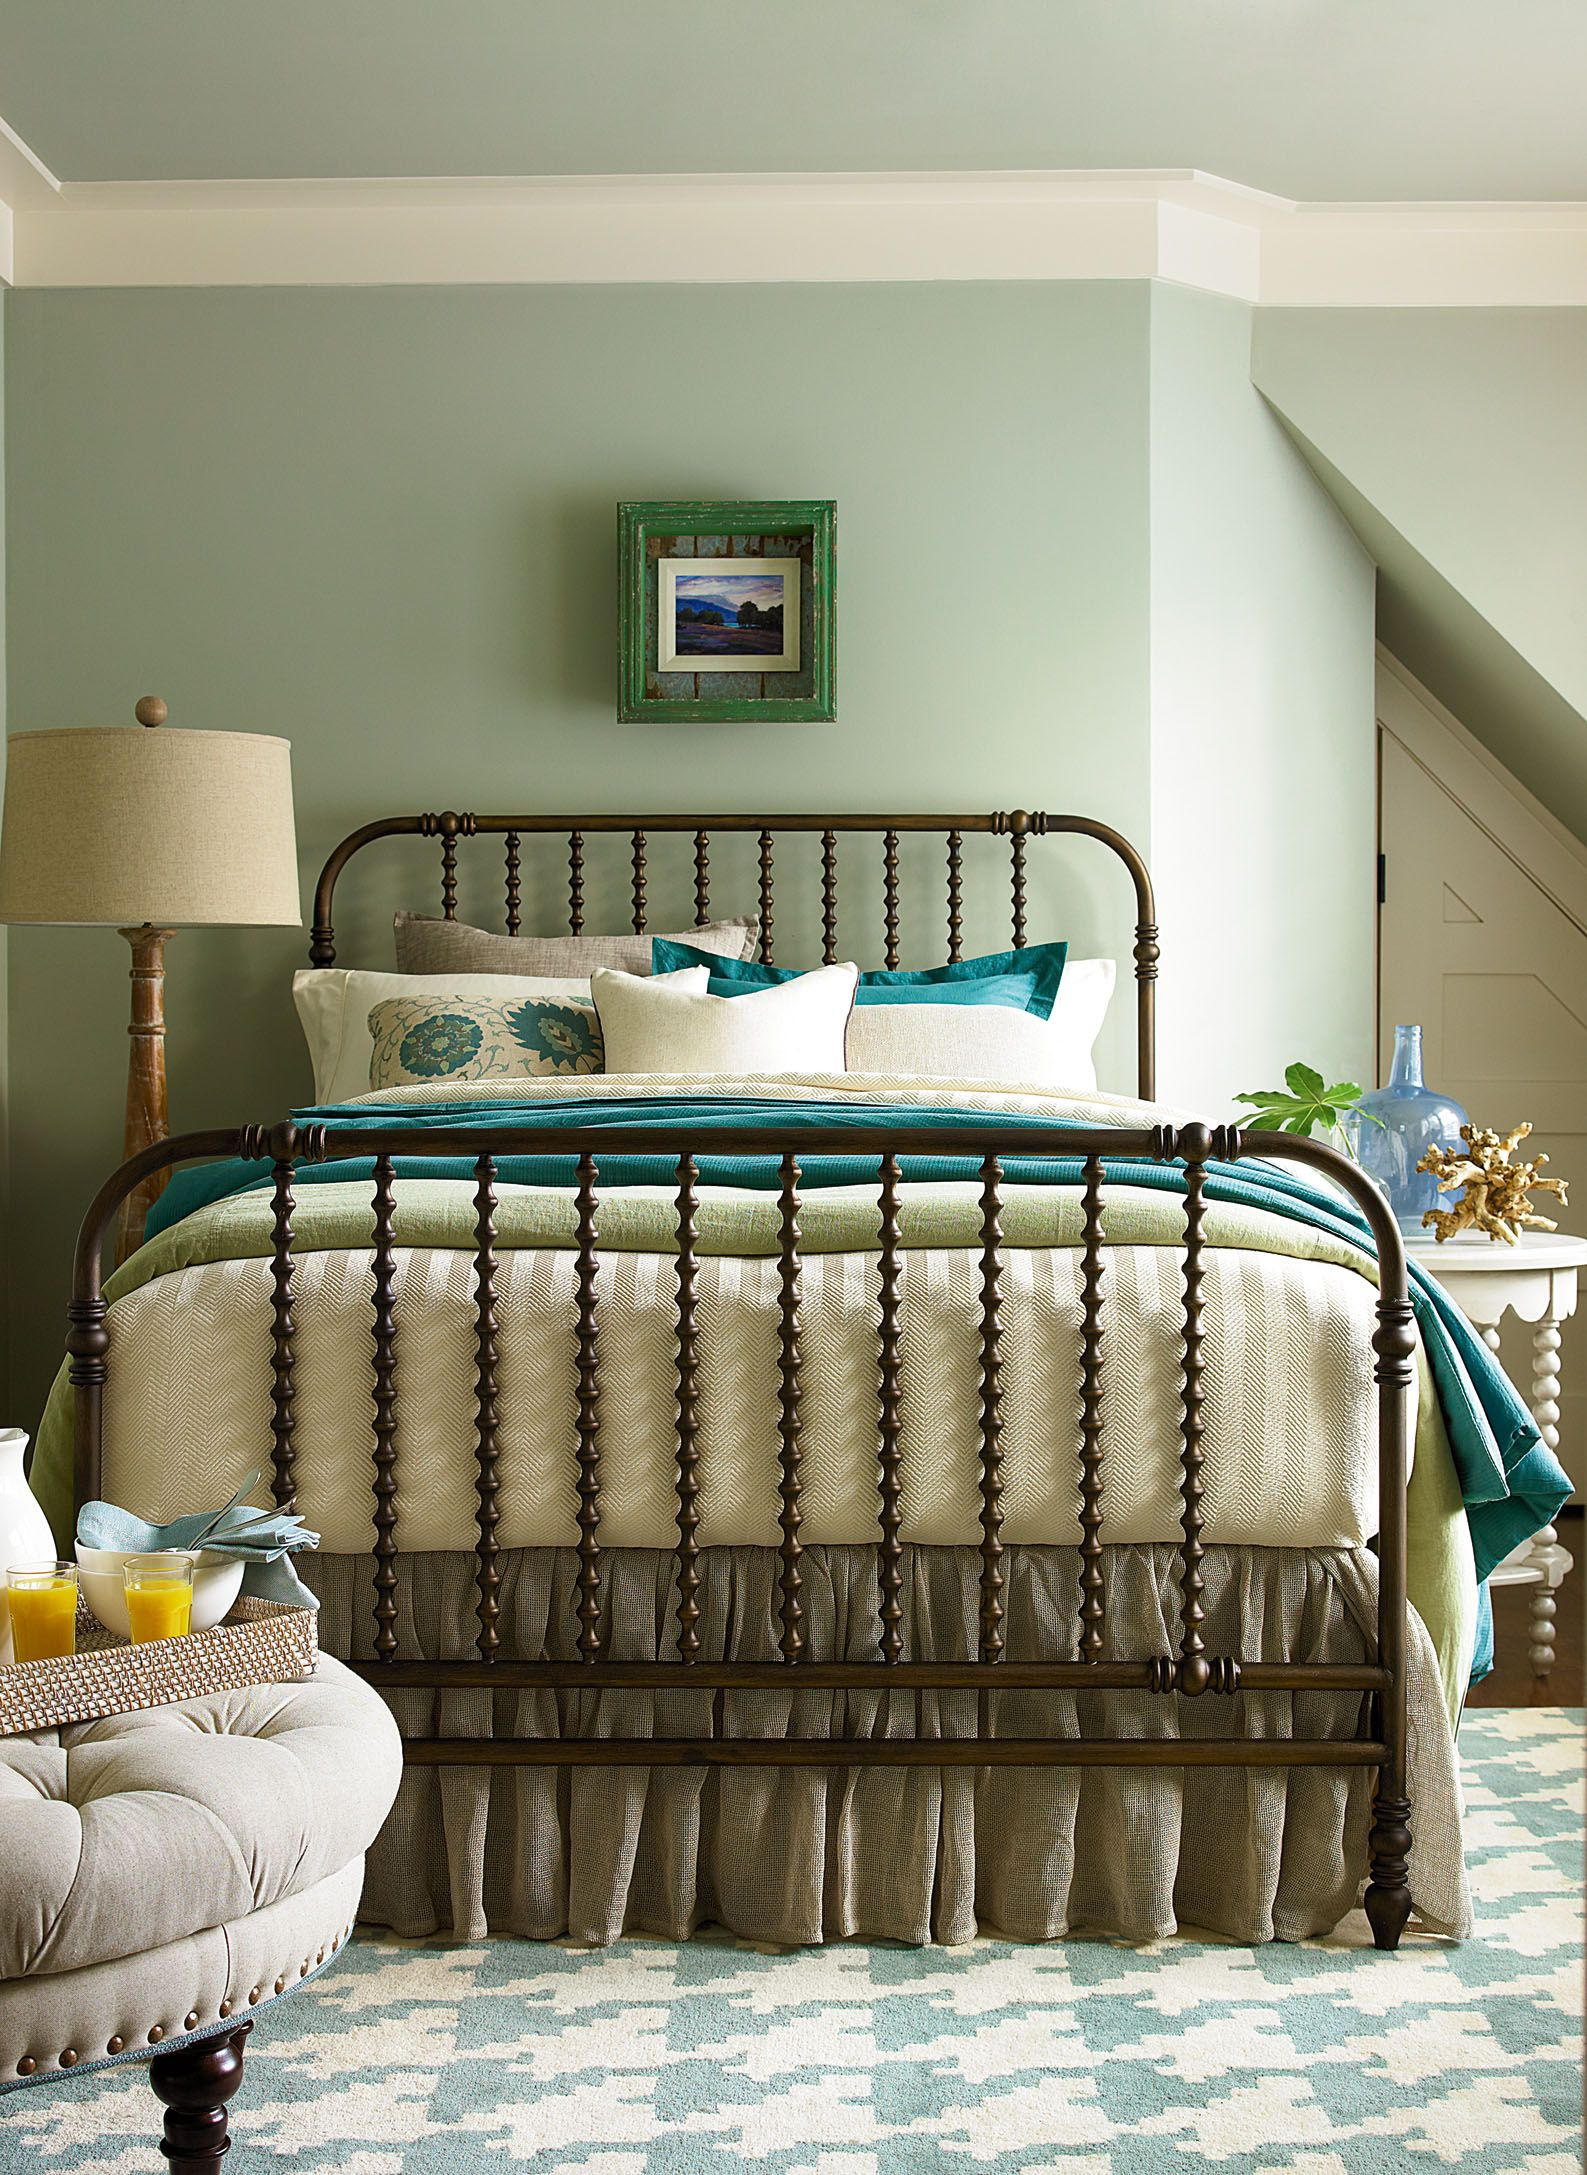 River House Collection The Guest Room Bed and Bobbin Side Table